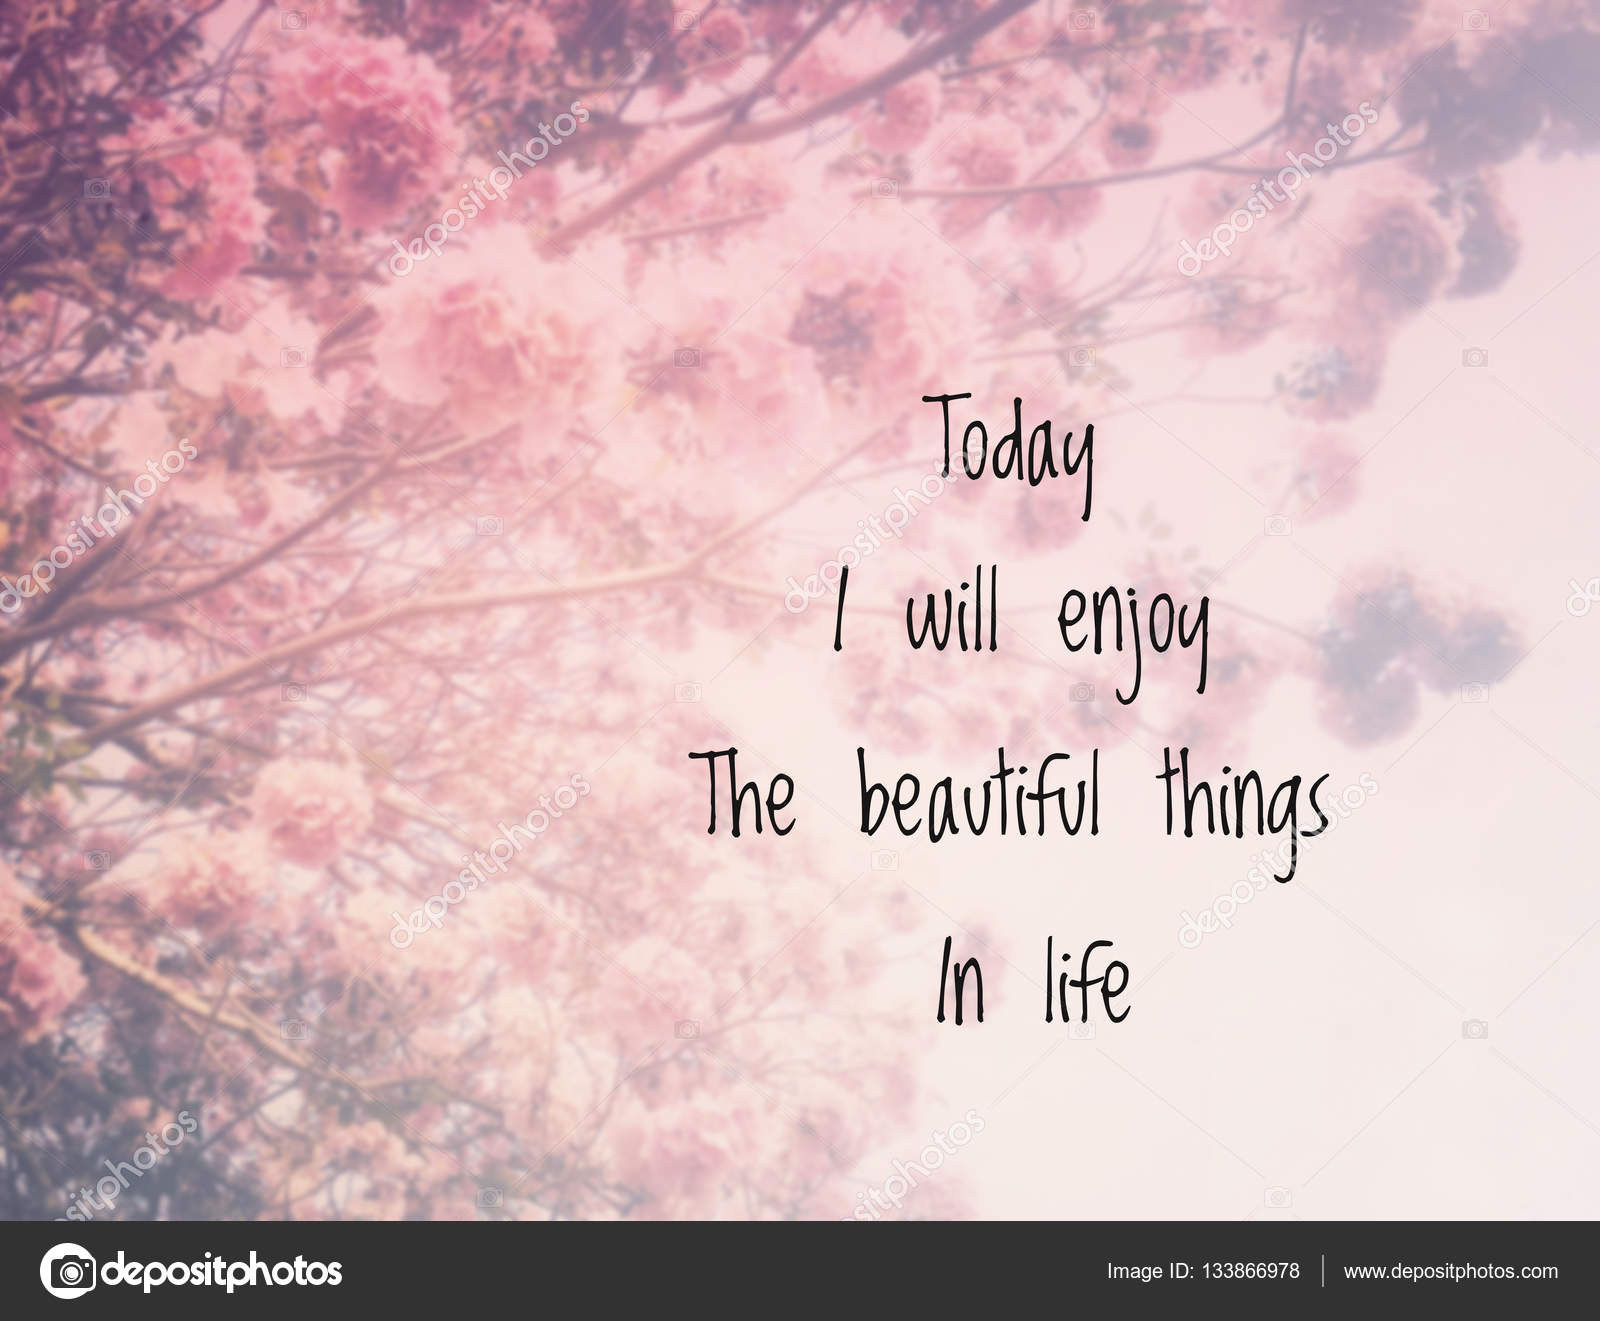 Wallpapers: beautiful quotes and inspirational ...